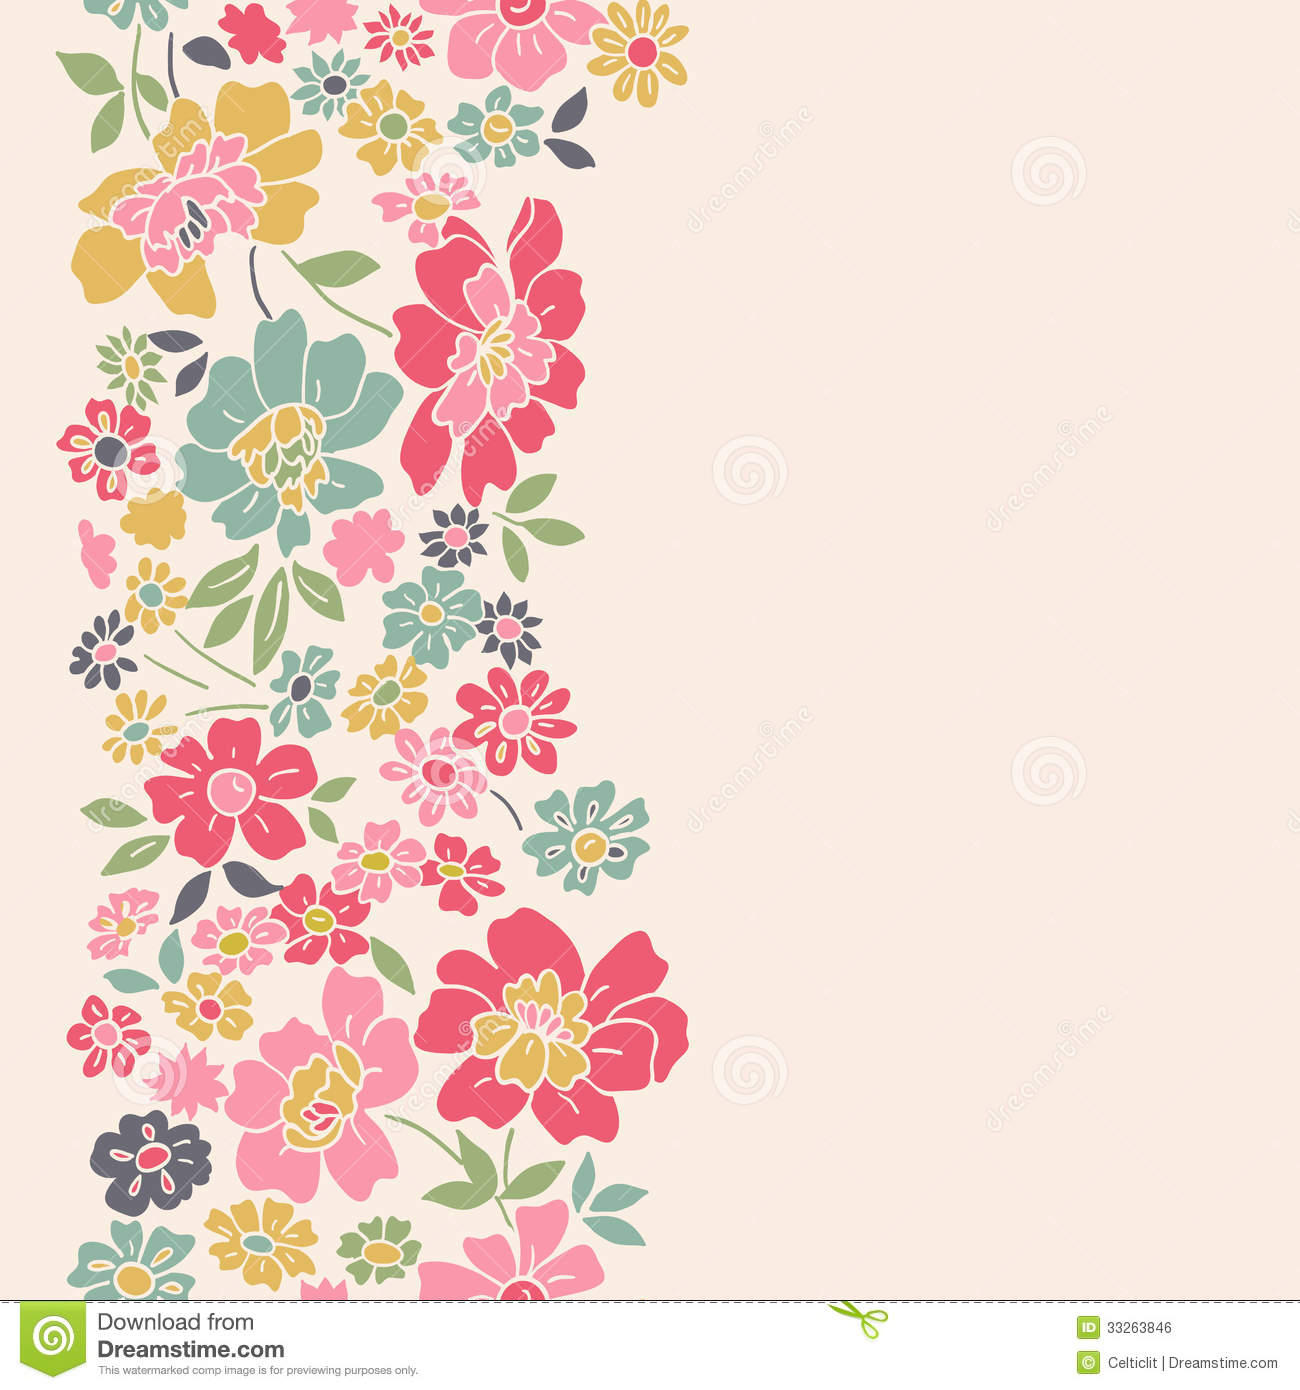 Free floral background images jpg transparent Free floral background images - ClipartFest jpg transparent